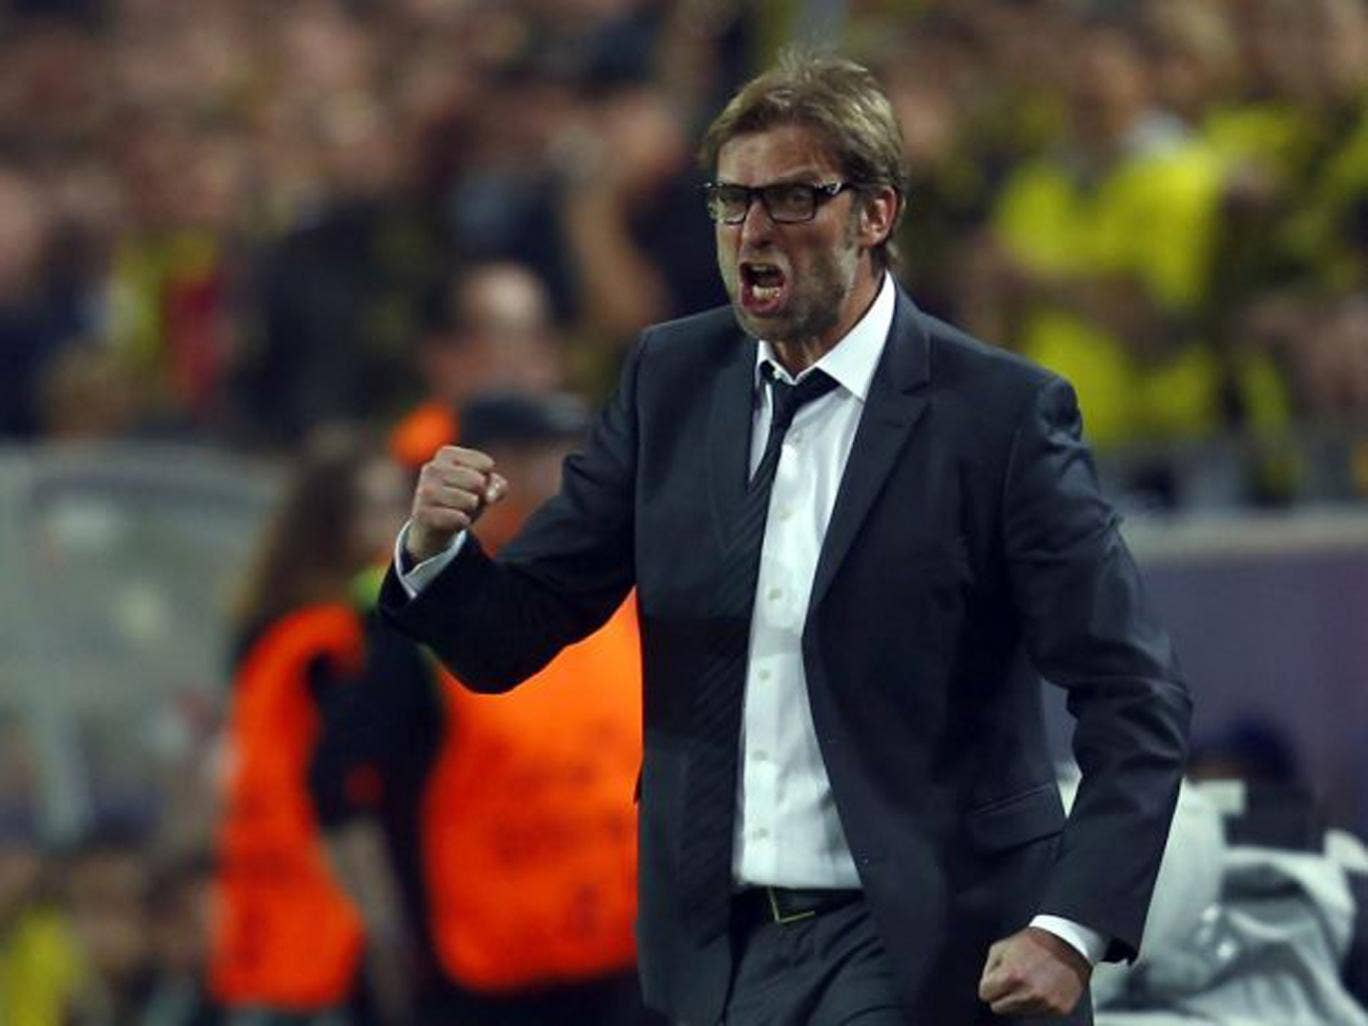 Klopp's calm over Götze's loss  is more cause to laud Germans